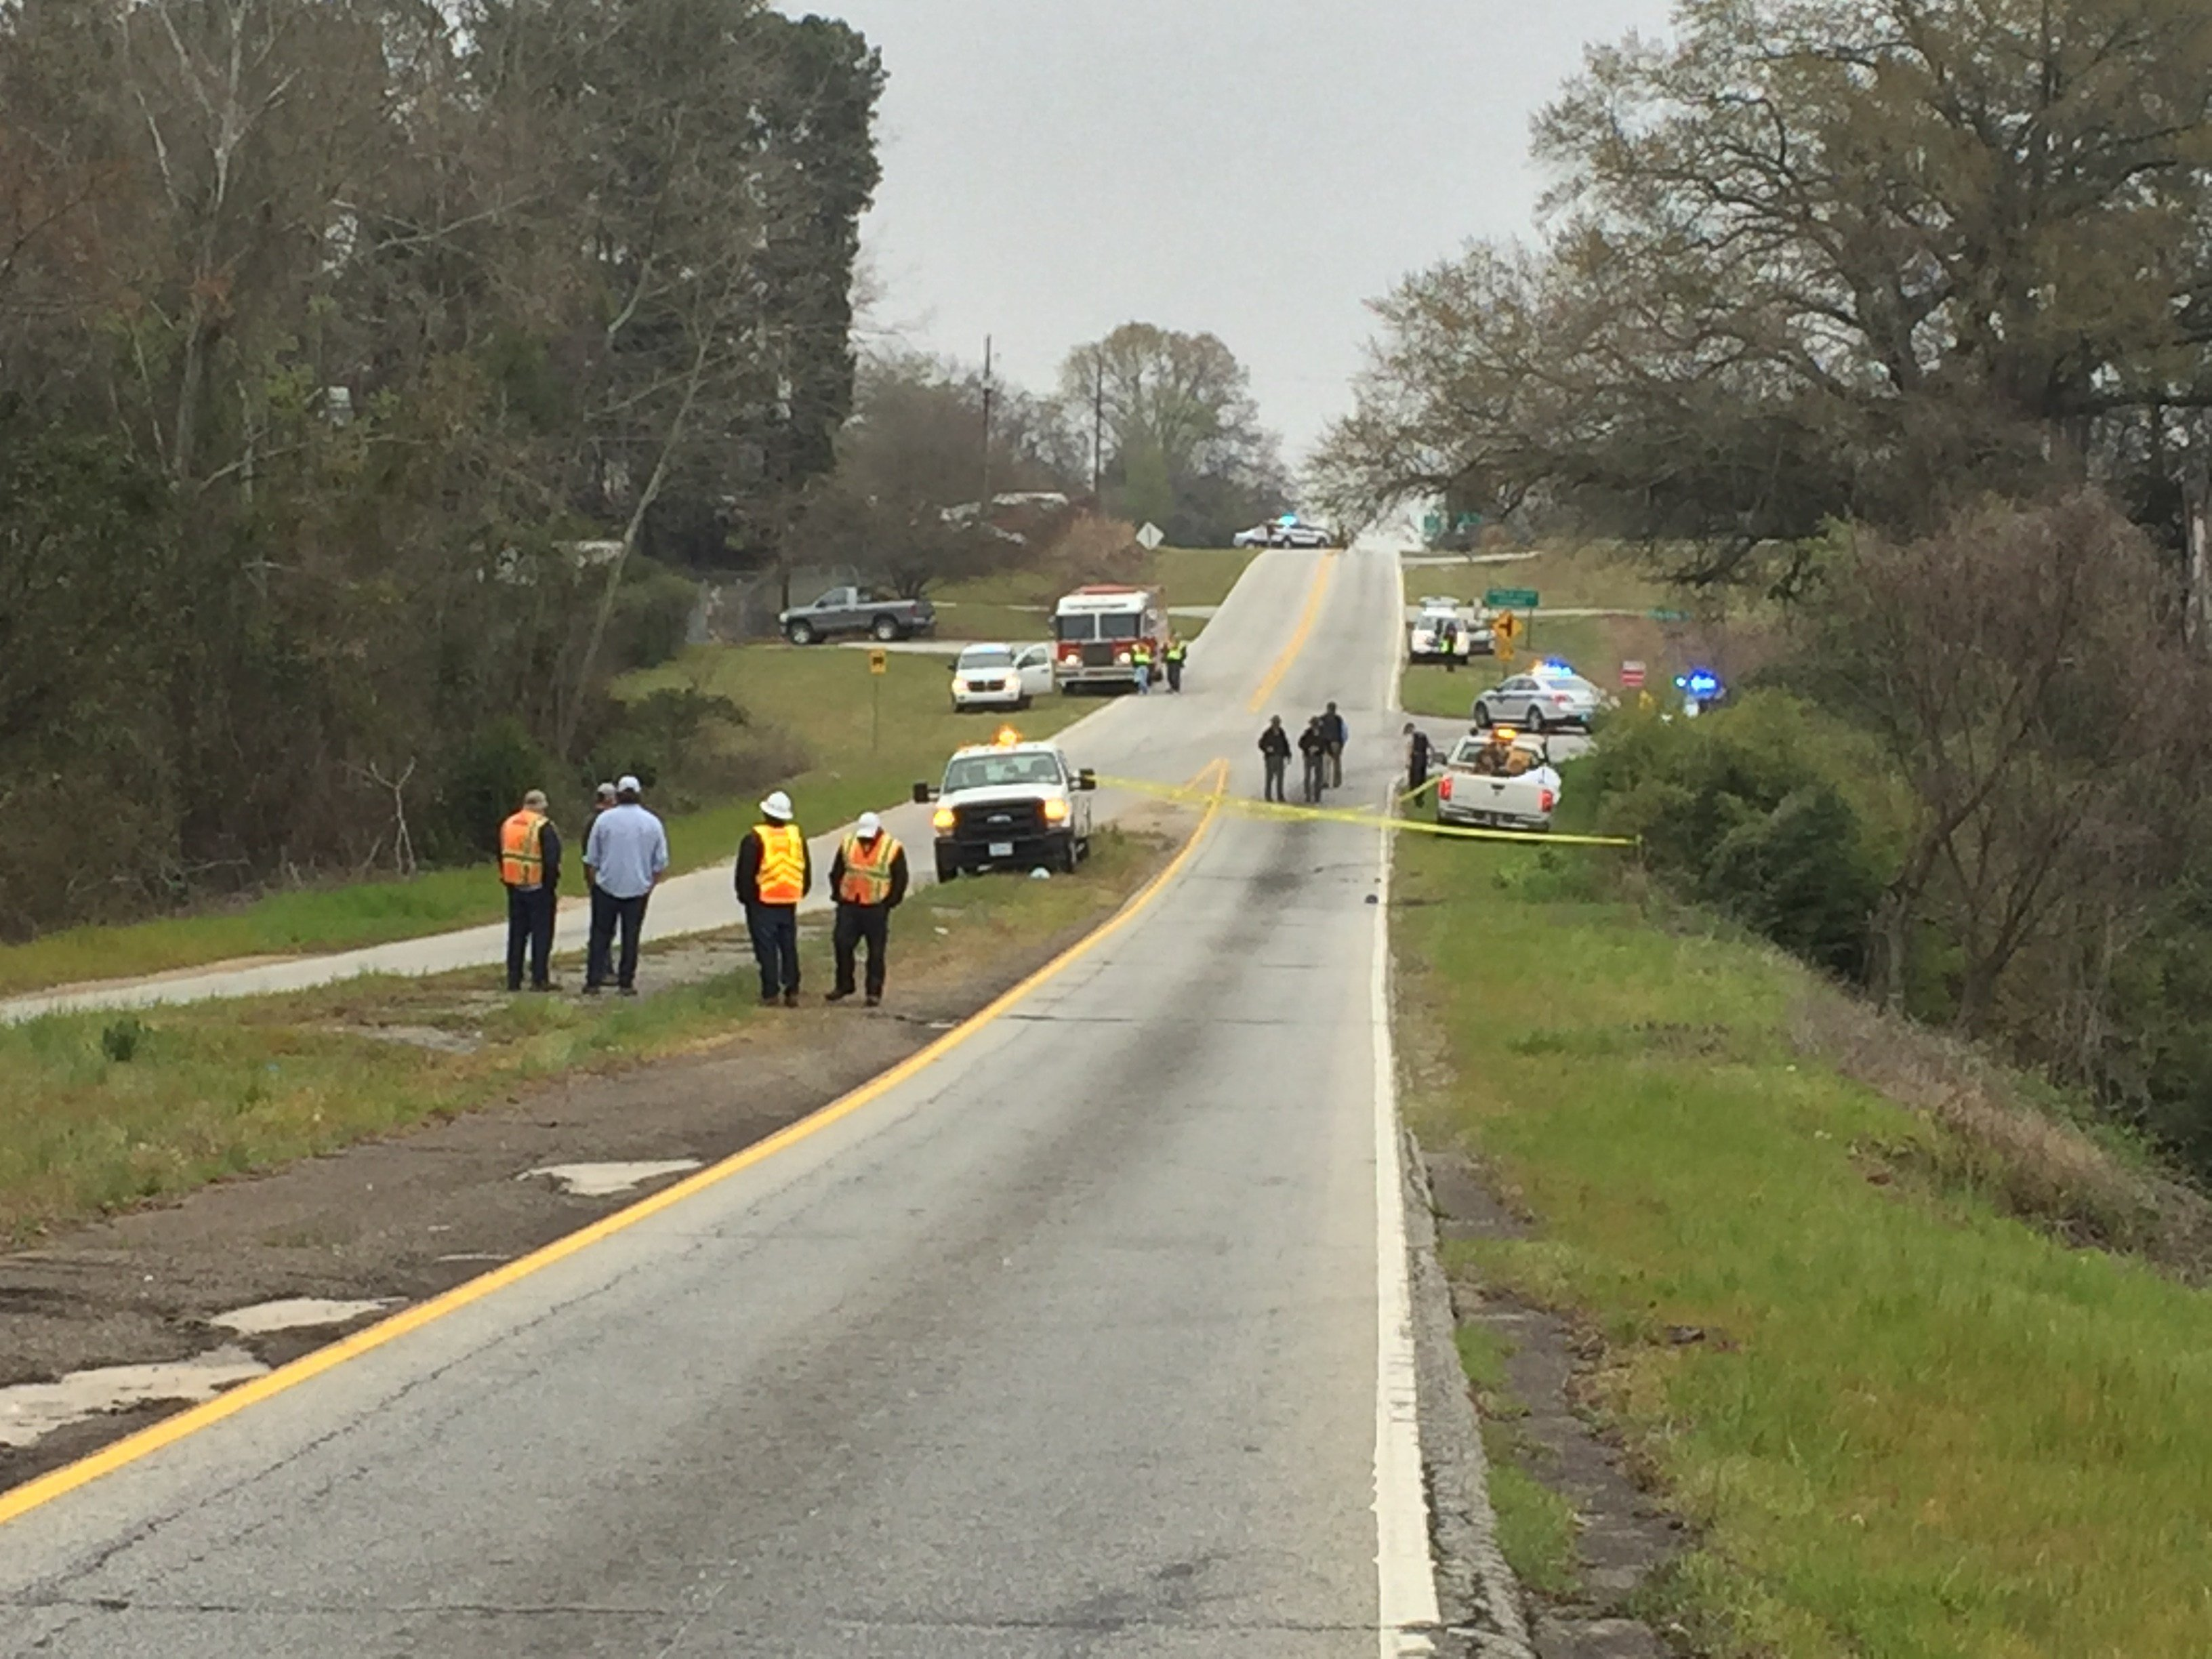 Transportation workers struck and killed in Aiken County